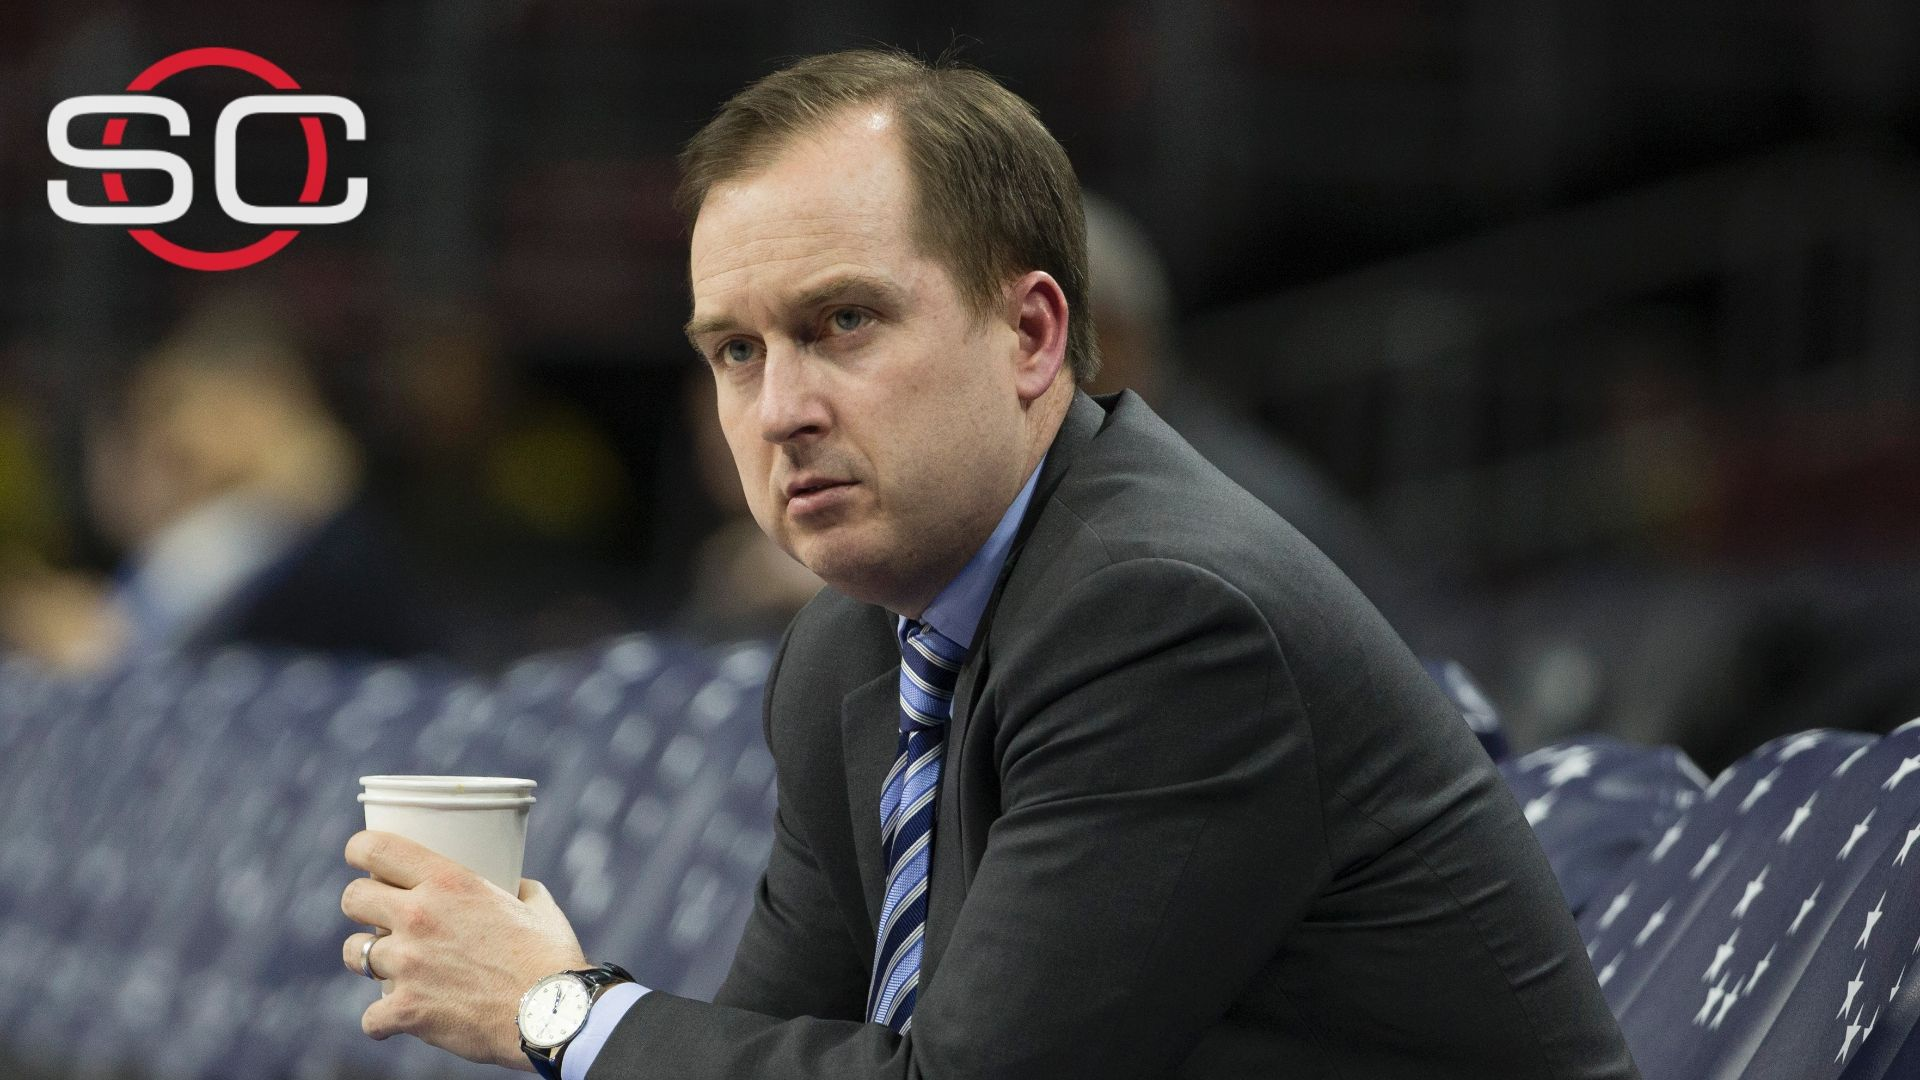 https://secure.espncdn.com/combiner/i?img=/media/motion/2016/0406/dm_160406_nba_samhinkie_headline/dm_160406_nba_samhinkie_headline.jpg